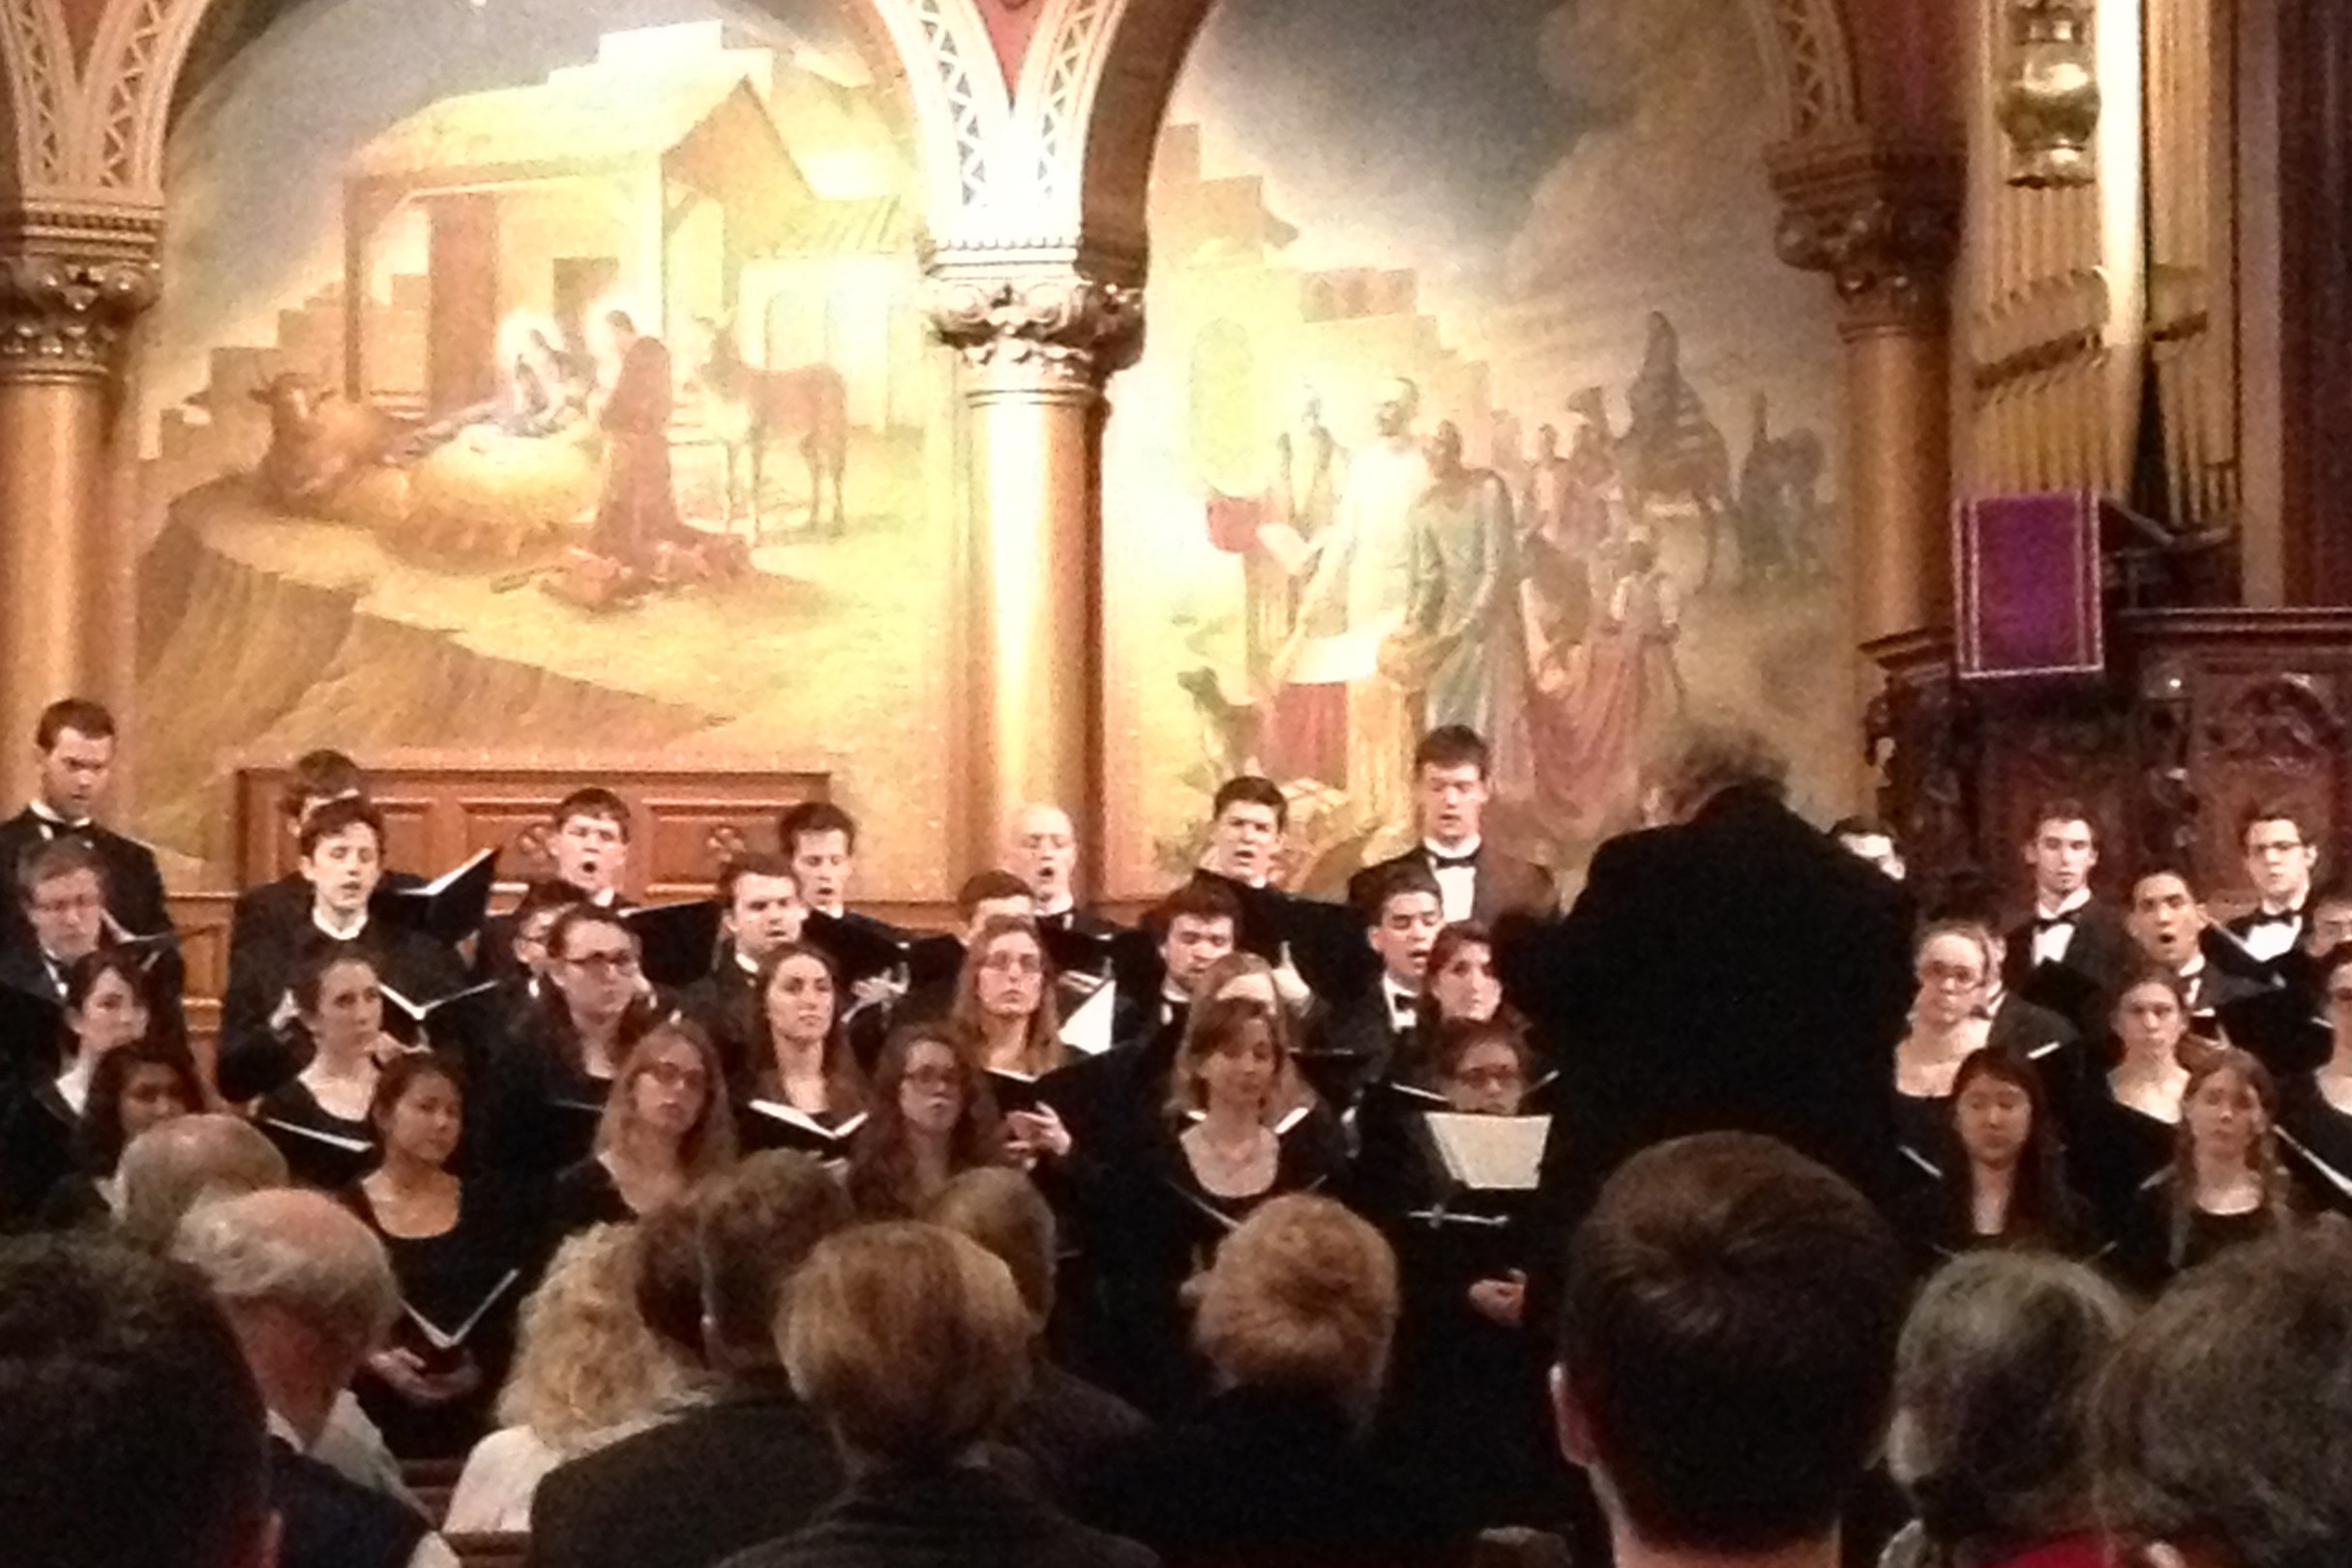 Choir at Philadelphia's Church of the Holy Trinity